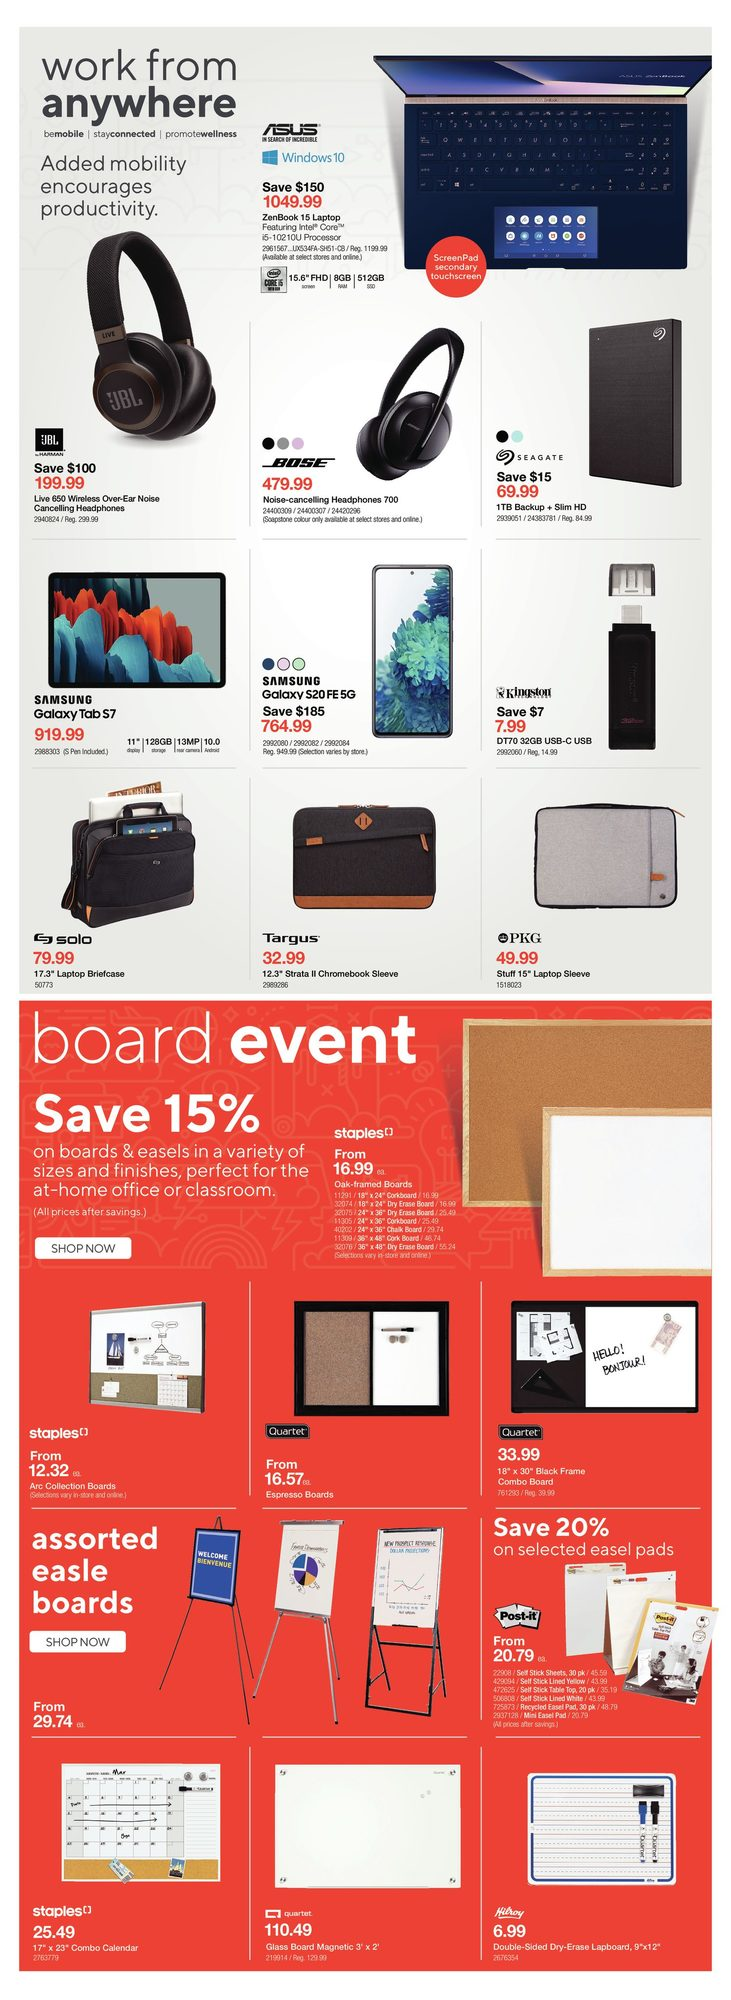 Staples - Weekly Flyer Specials - Page 3